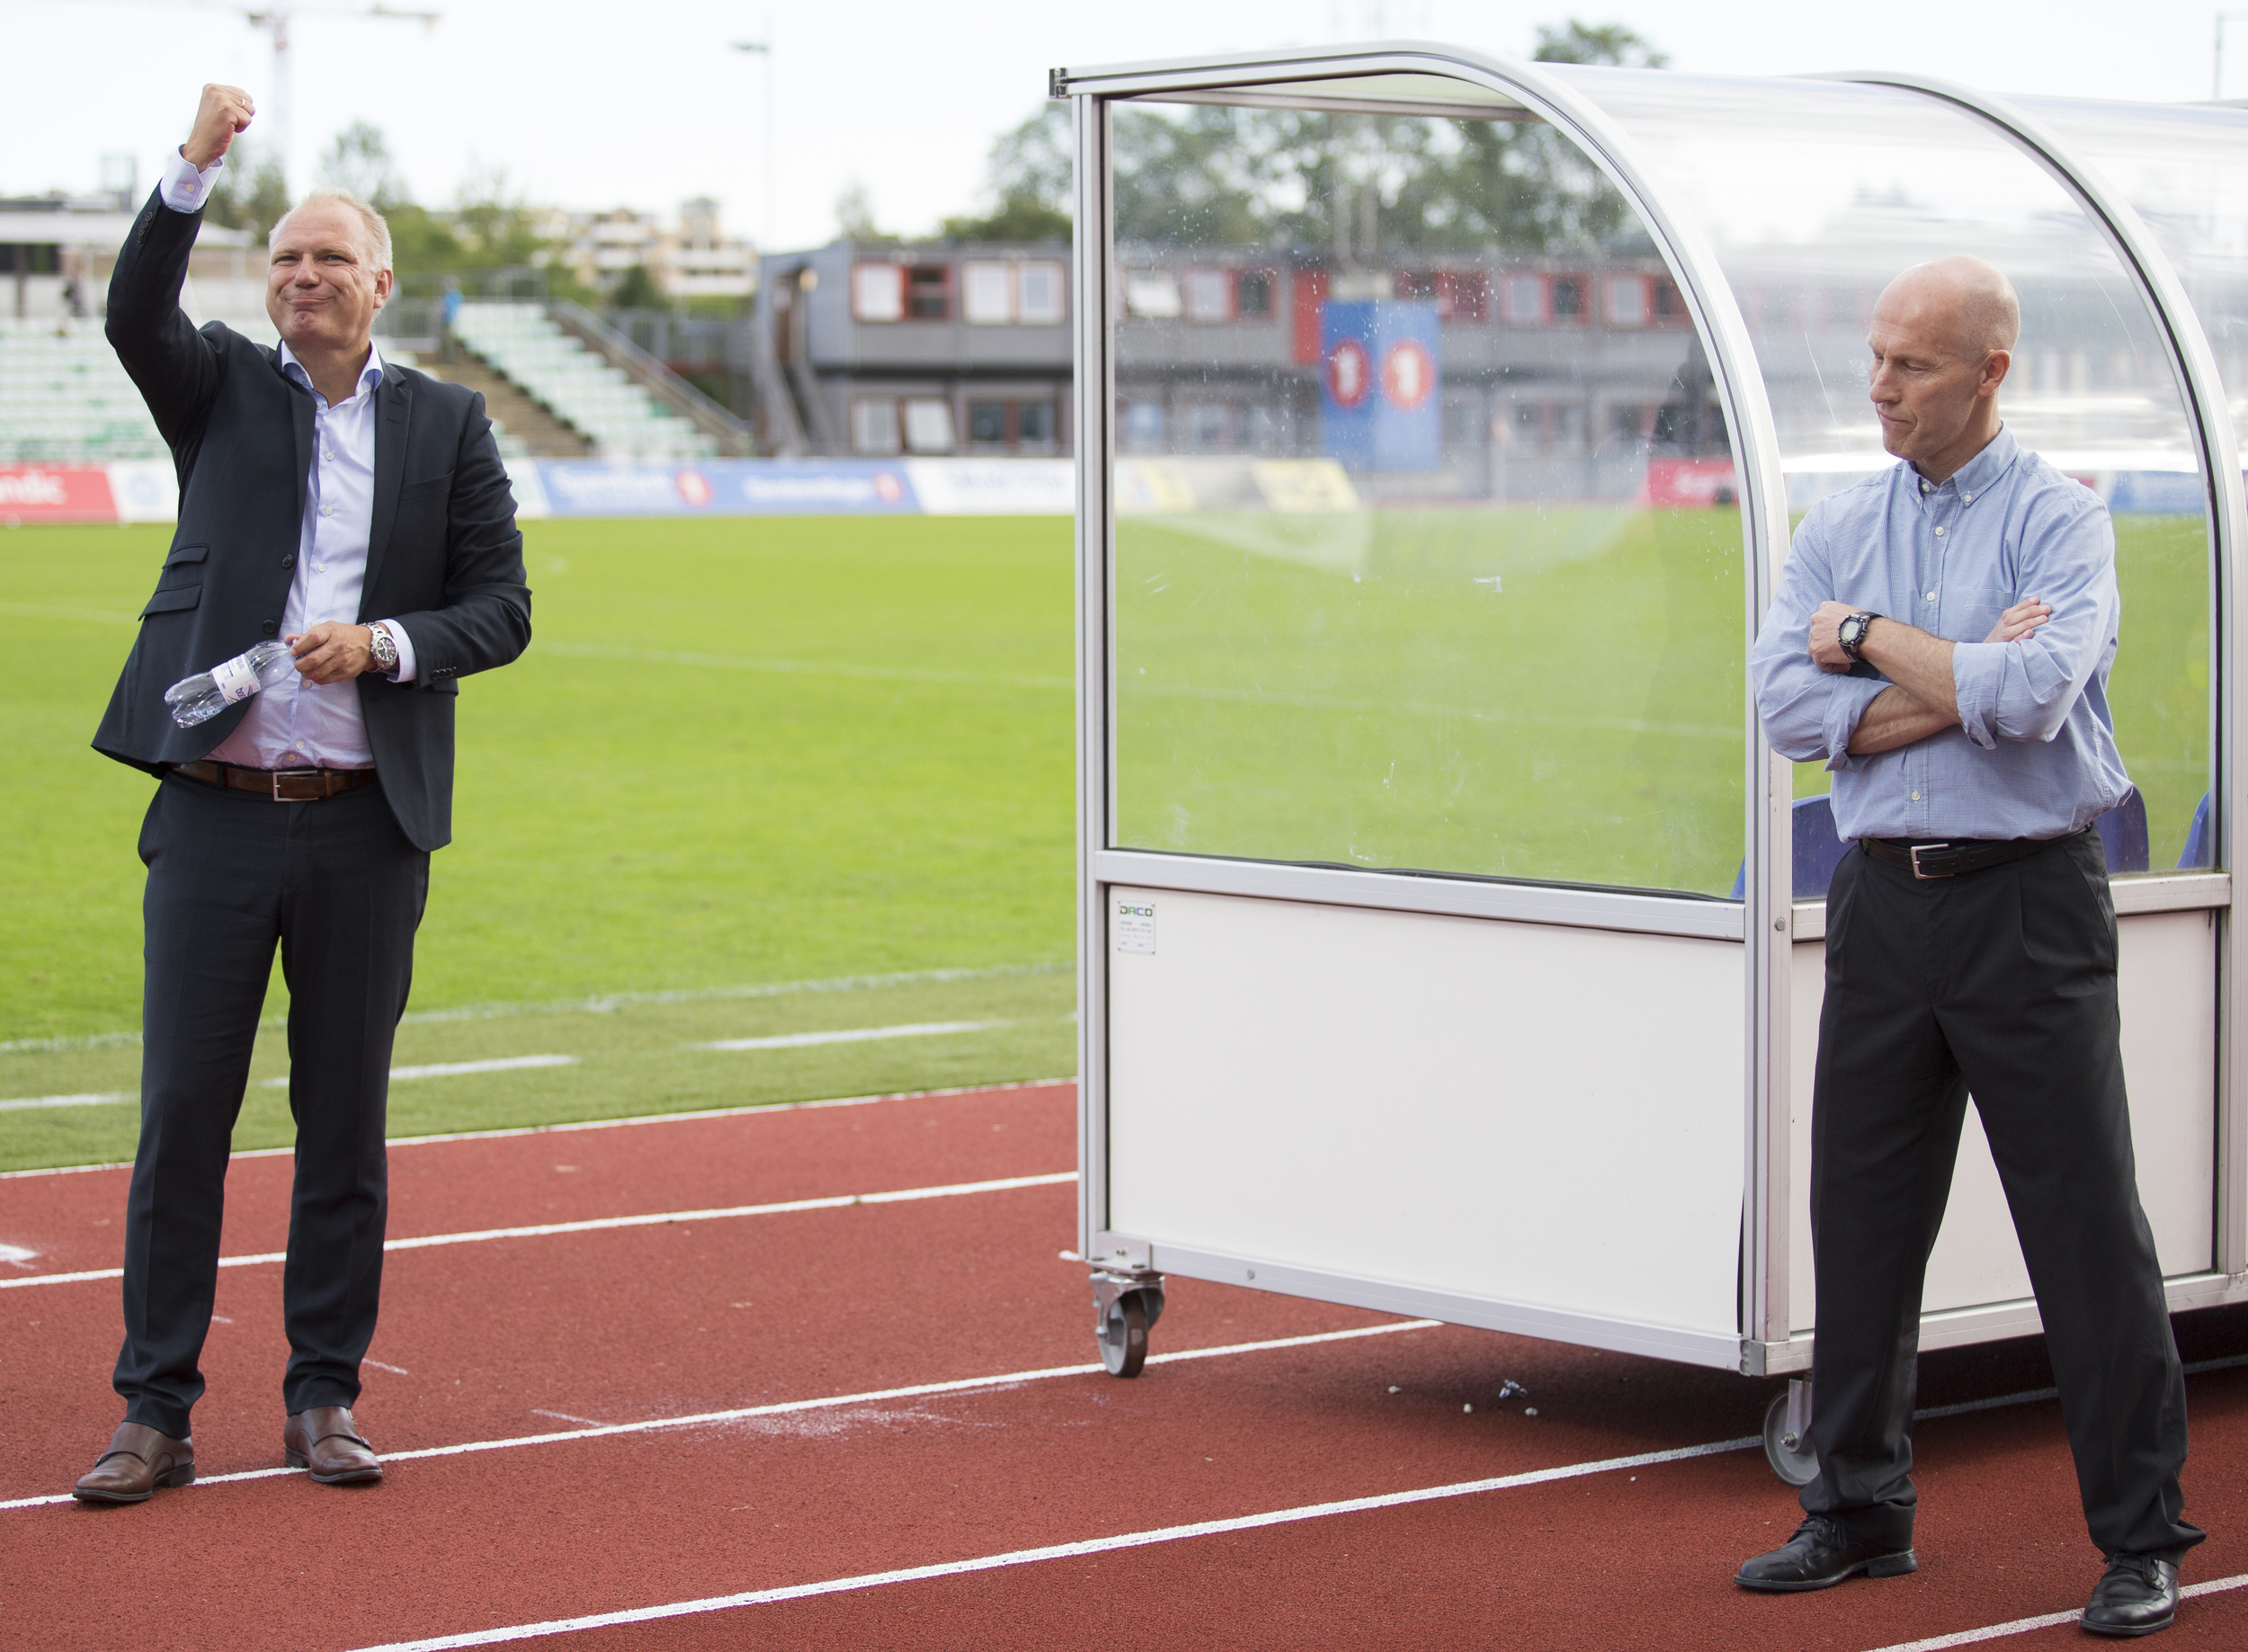 Football coach Dag-Eilev Fagermo is clearly delighted by the victory against Bob Bradley and his team